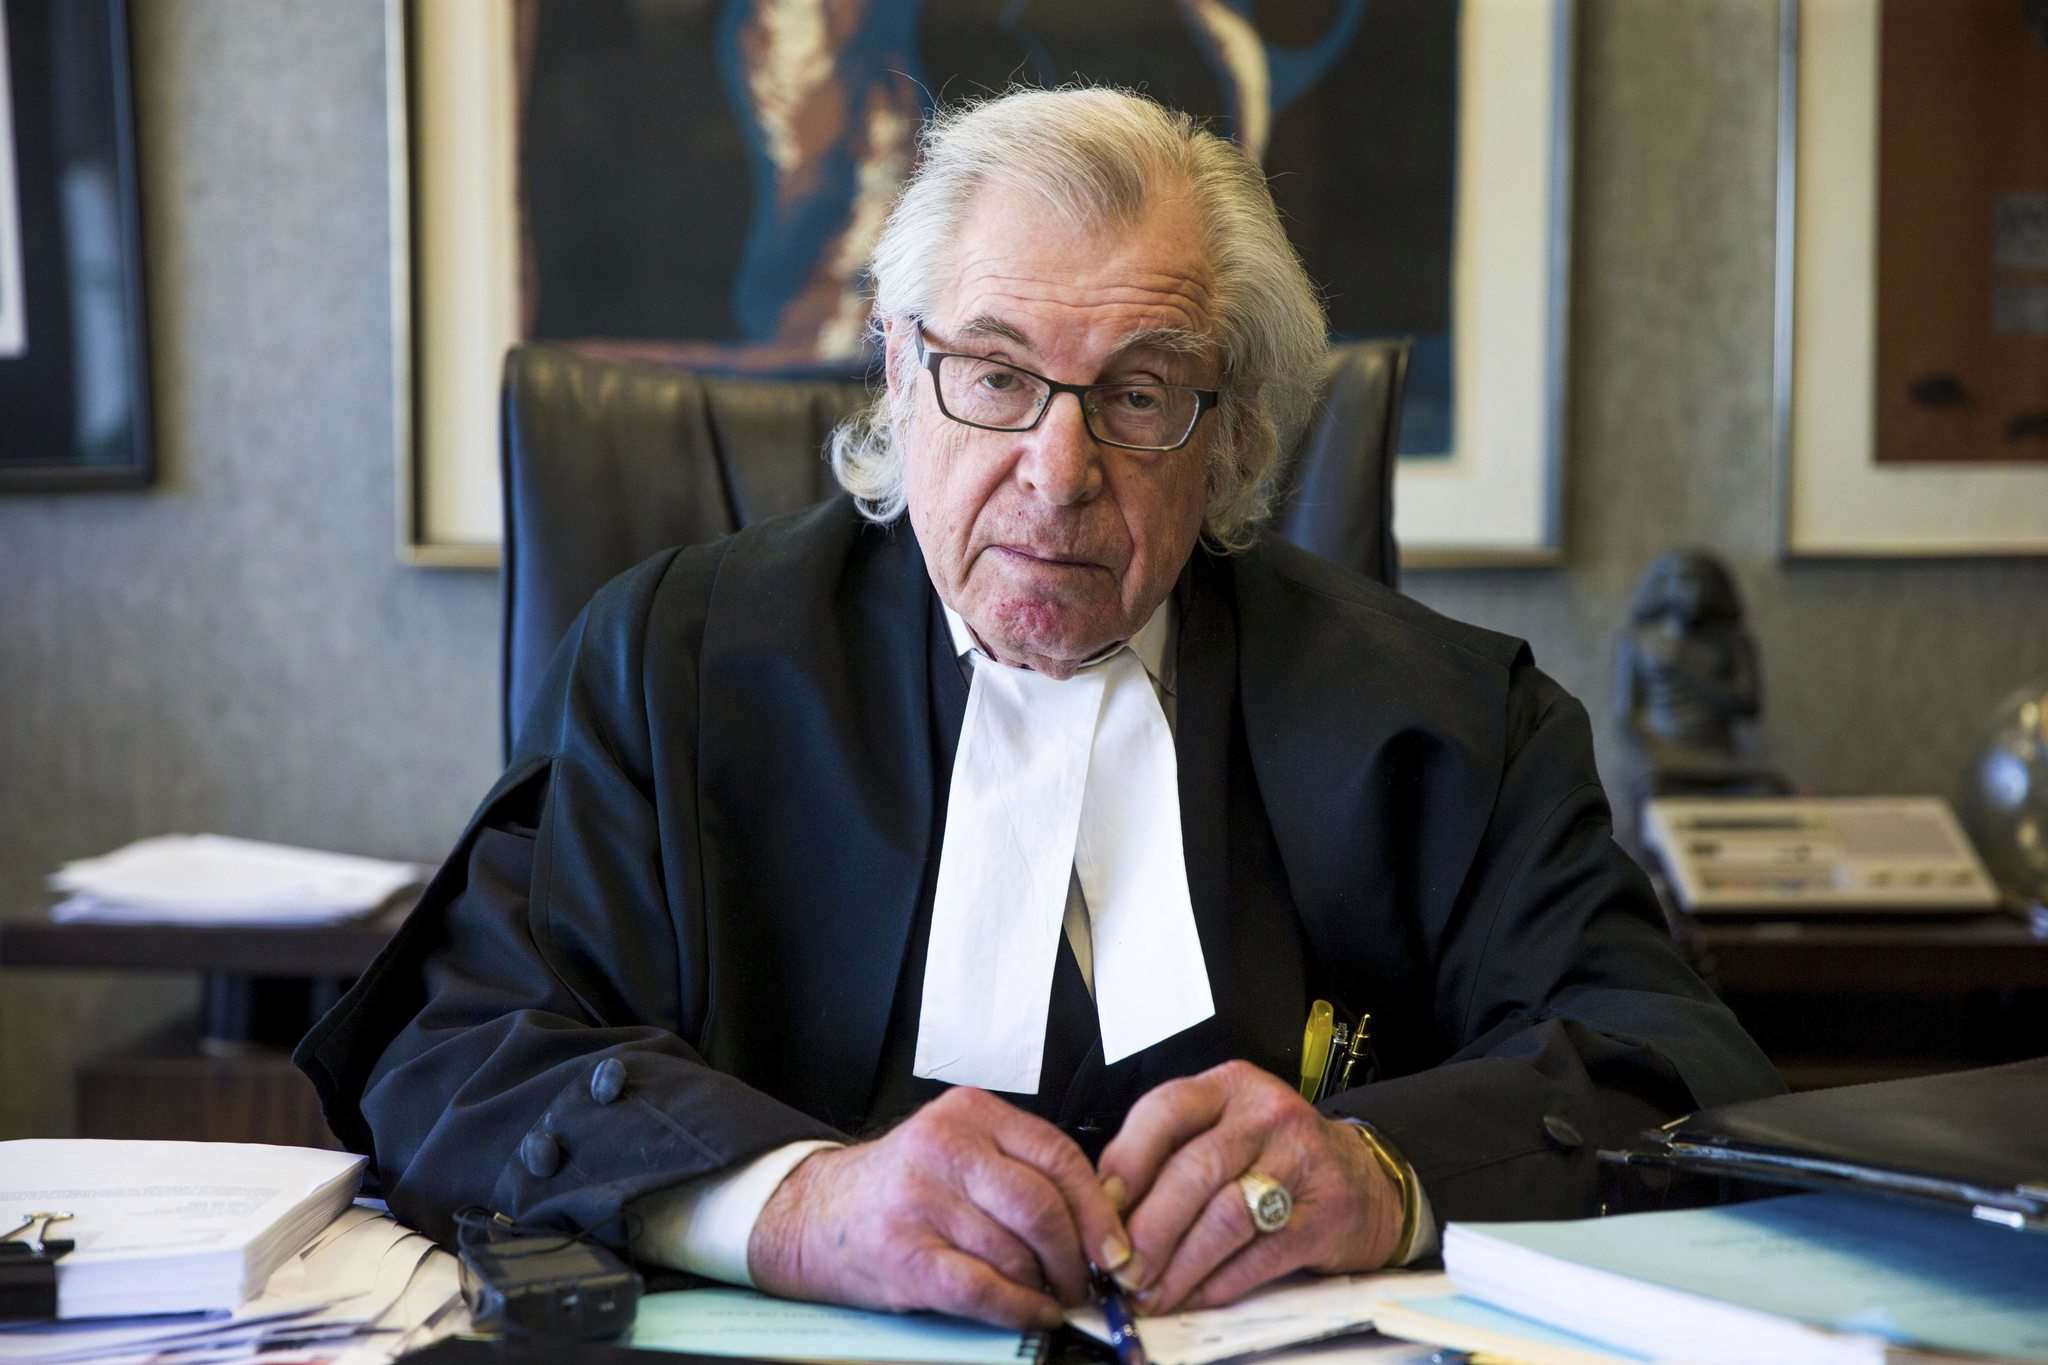 Known as a tenacious advocate, Greg Brodsky has changed the legal landscape in Canada.